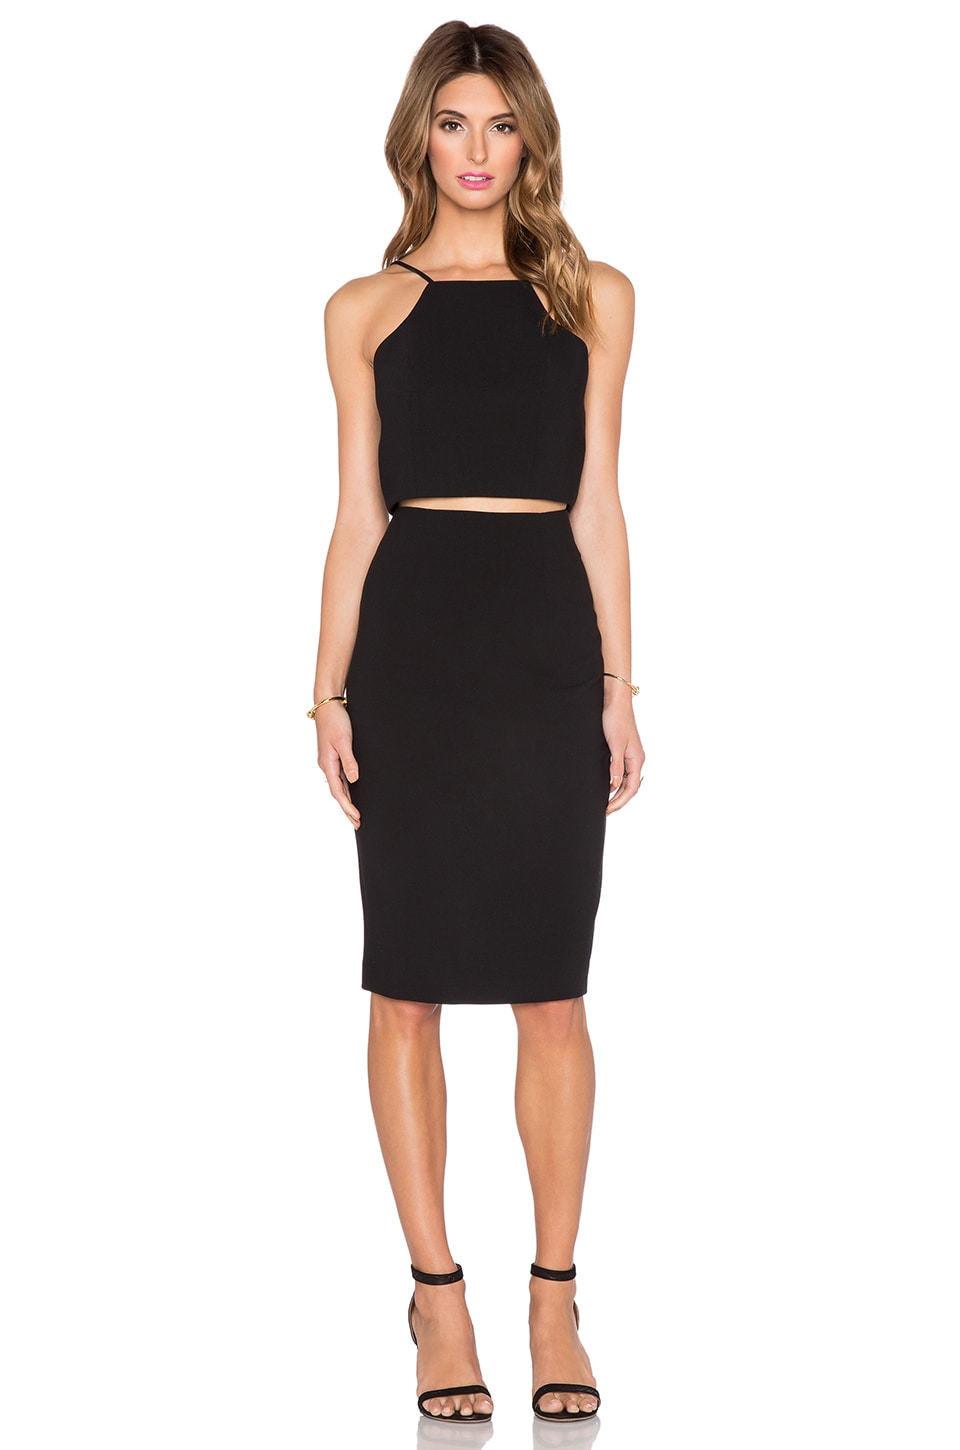 Black Halo Andretti 2 Piece Dress in Black